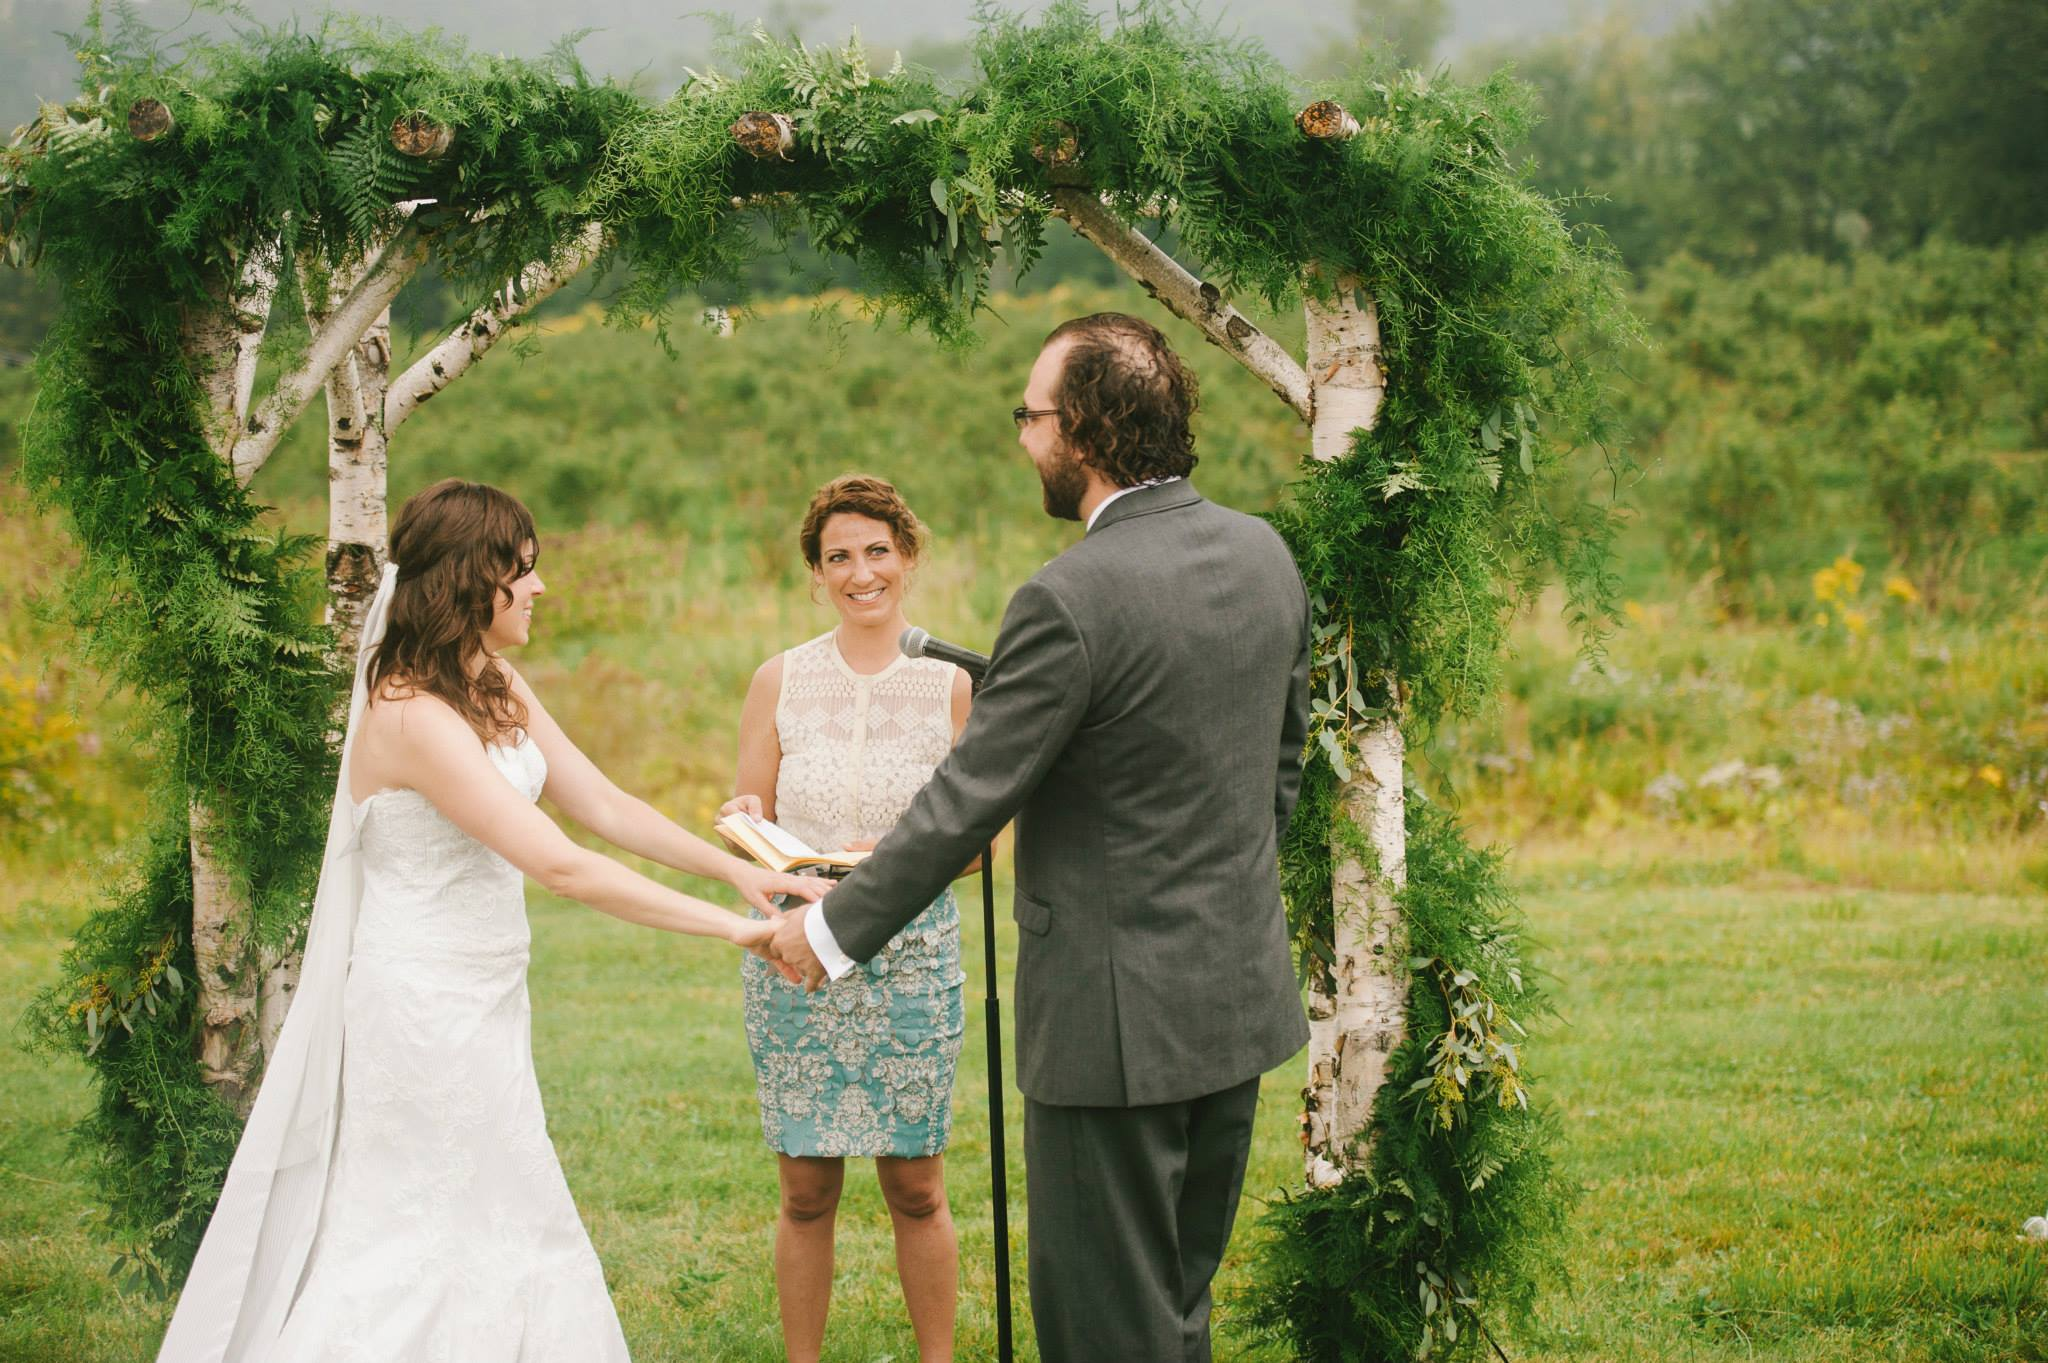 A stunning wedding in Vermont I was lucky enough to officiate